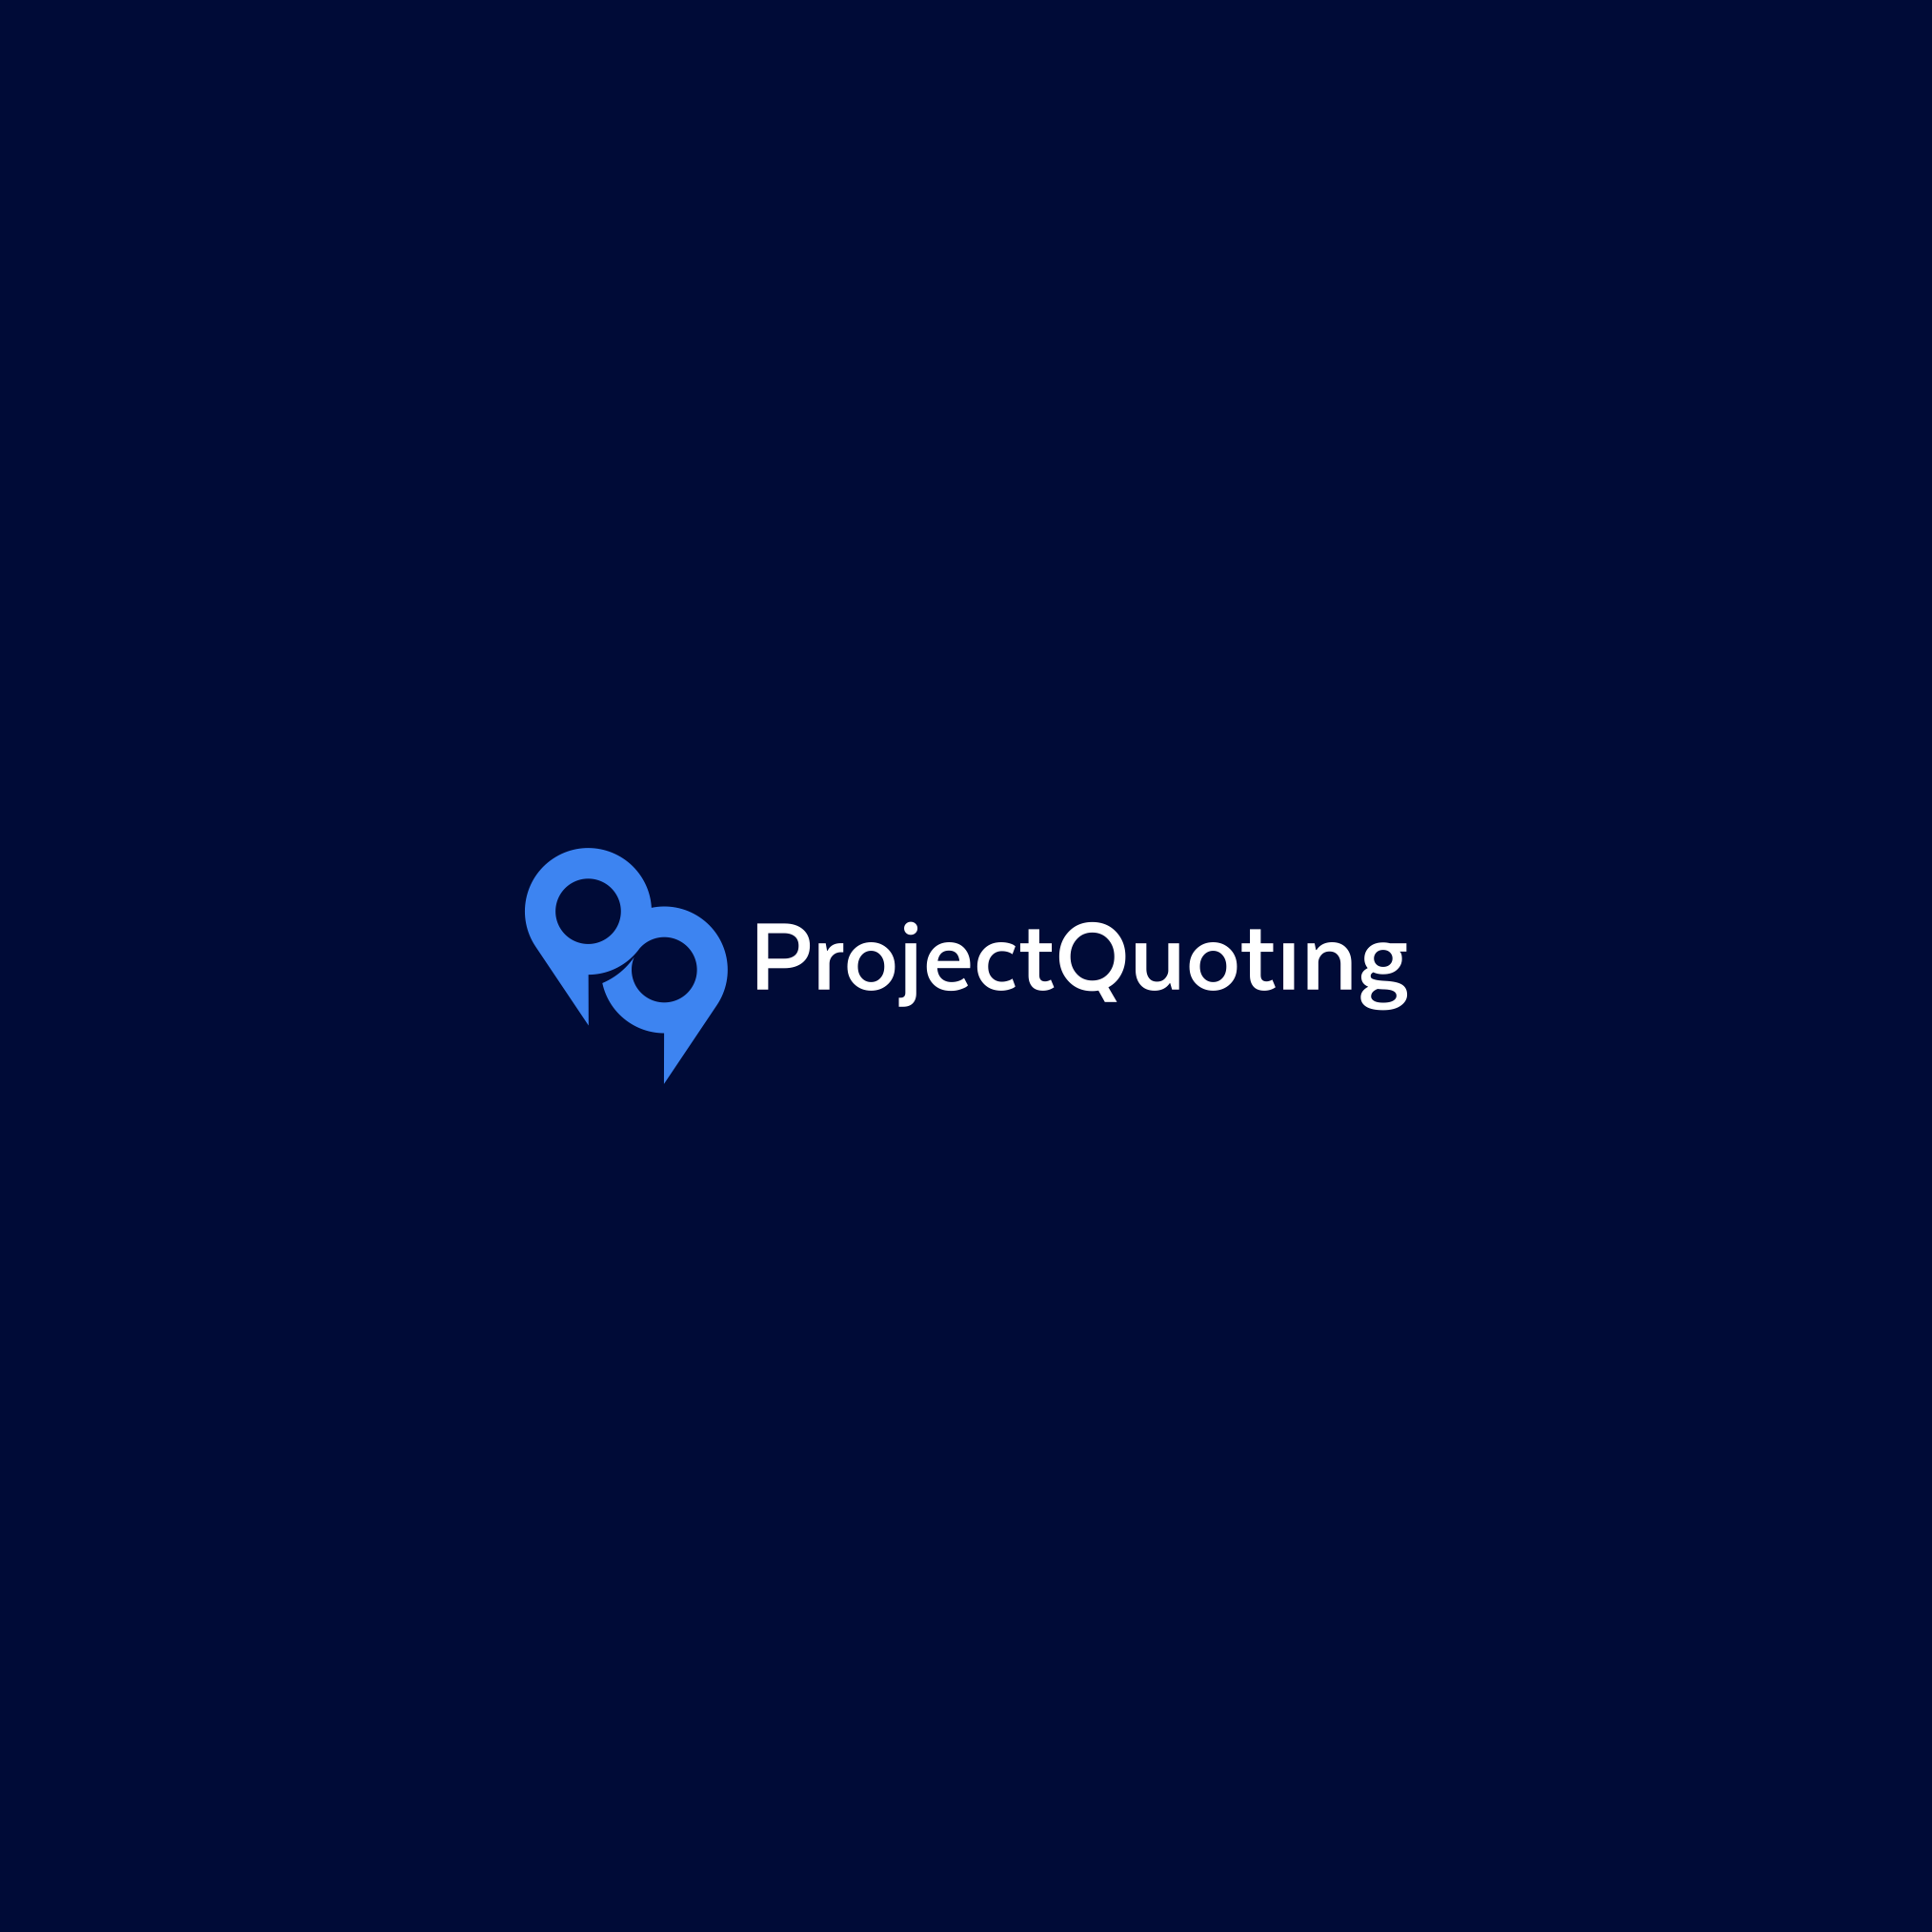 logo needed for projectquoting.com